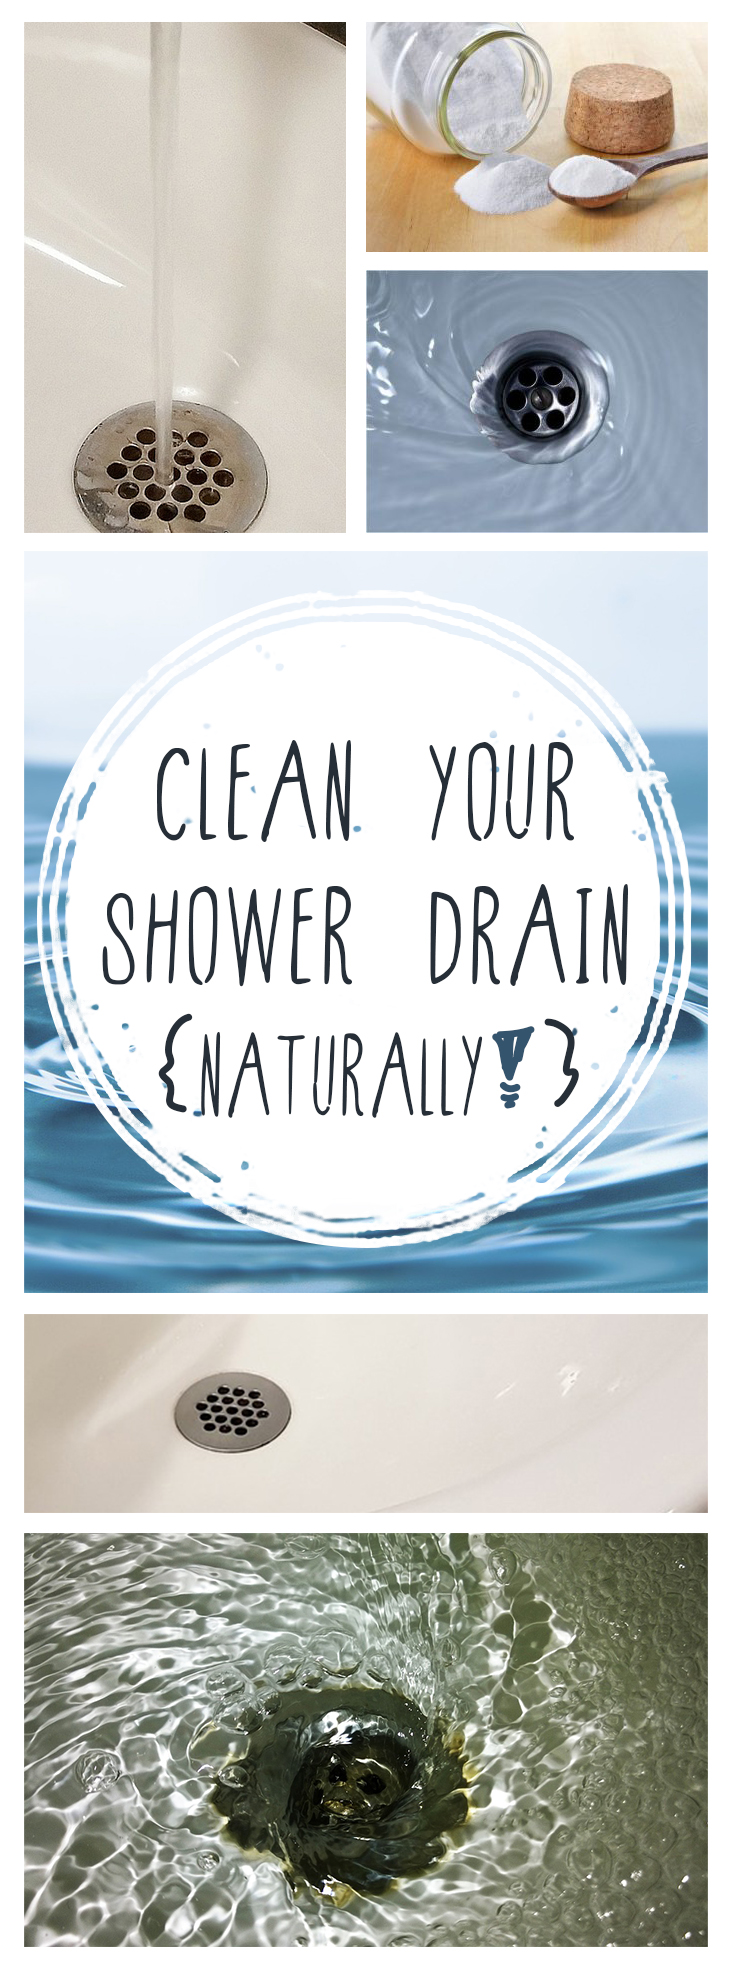 Clean your shower drain, how to clean your shower drain, cleaning, clean bathroom, bathroom cleaning, popular pin, easy bathroom cleaning tips..